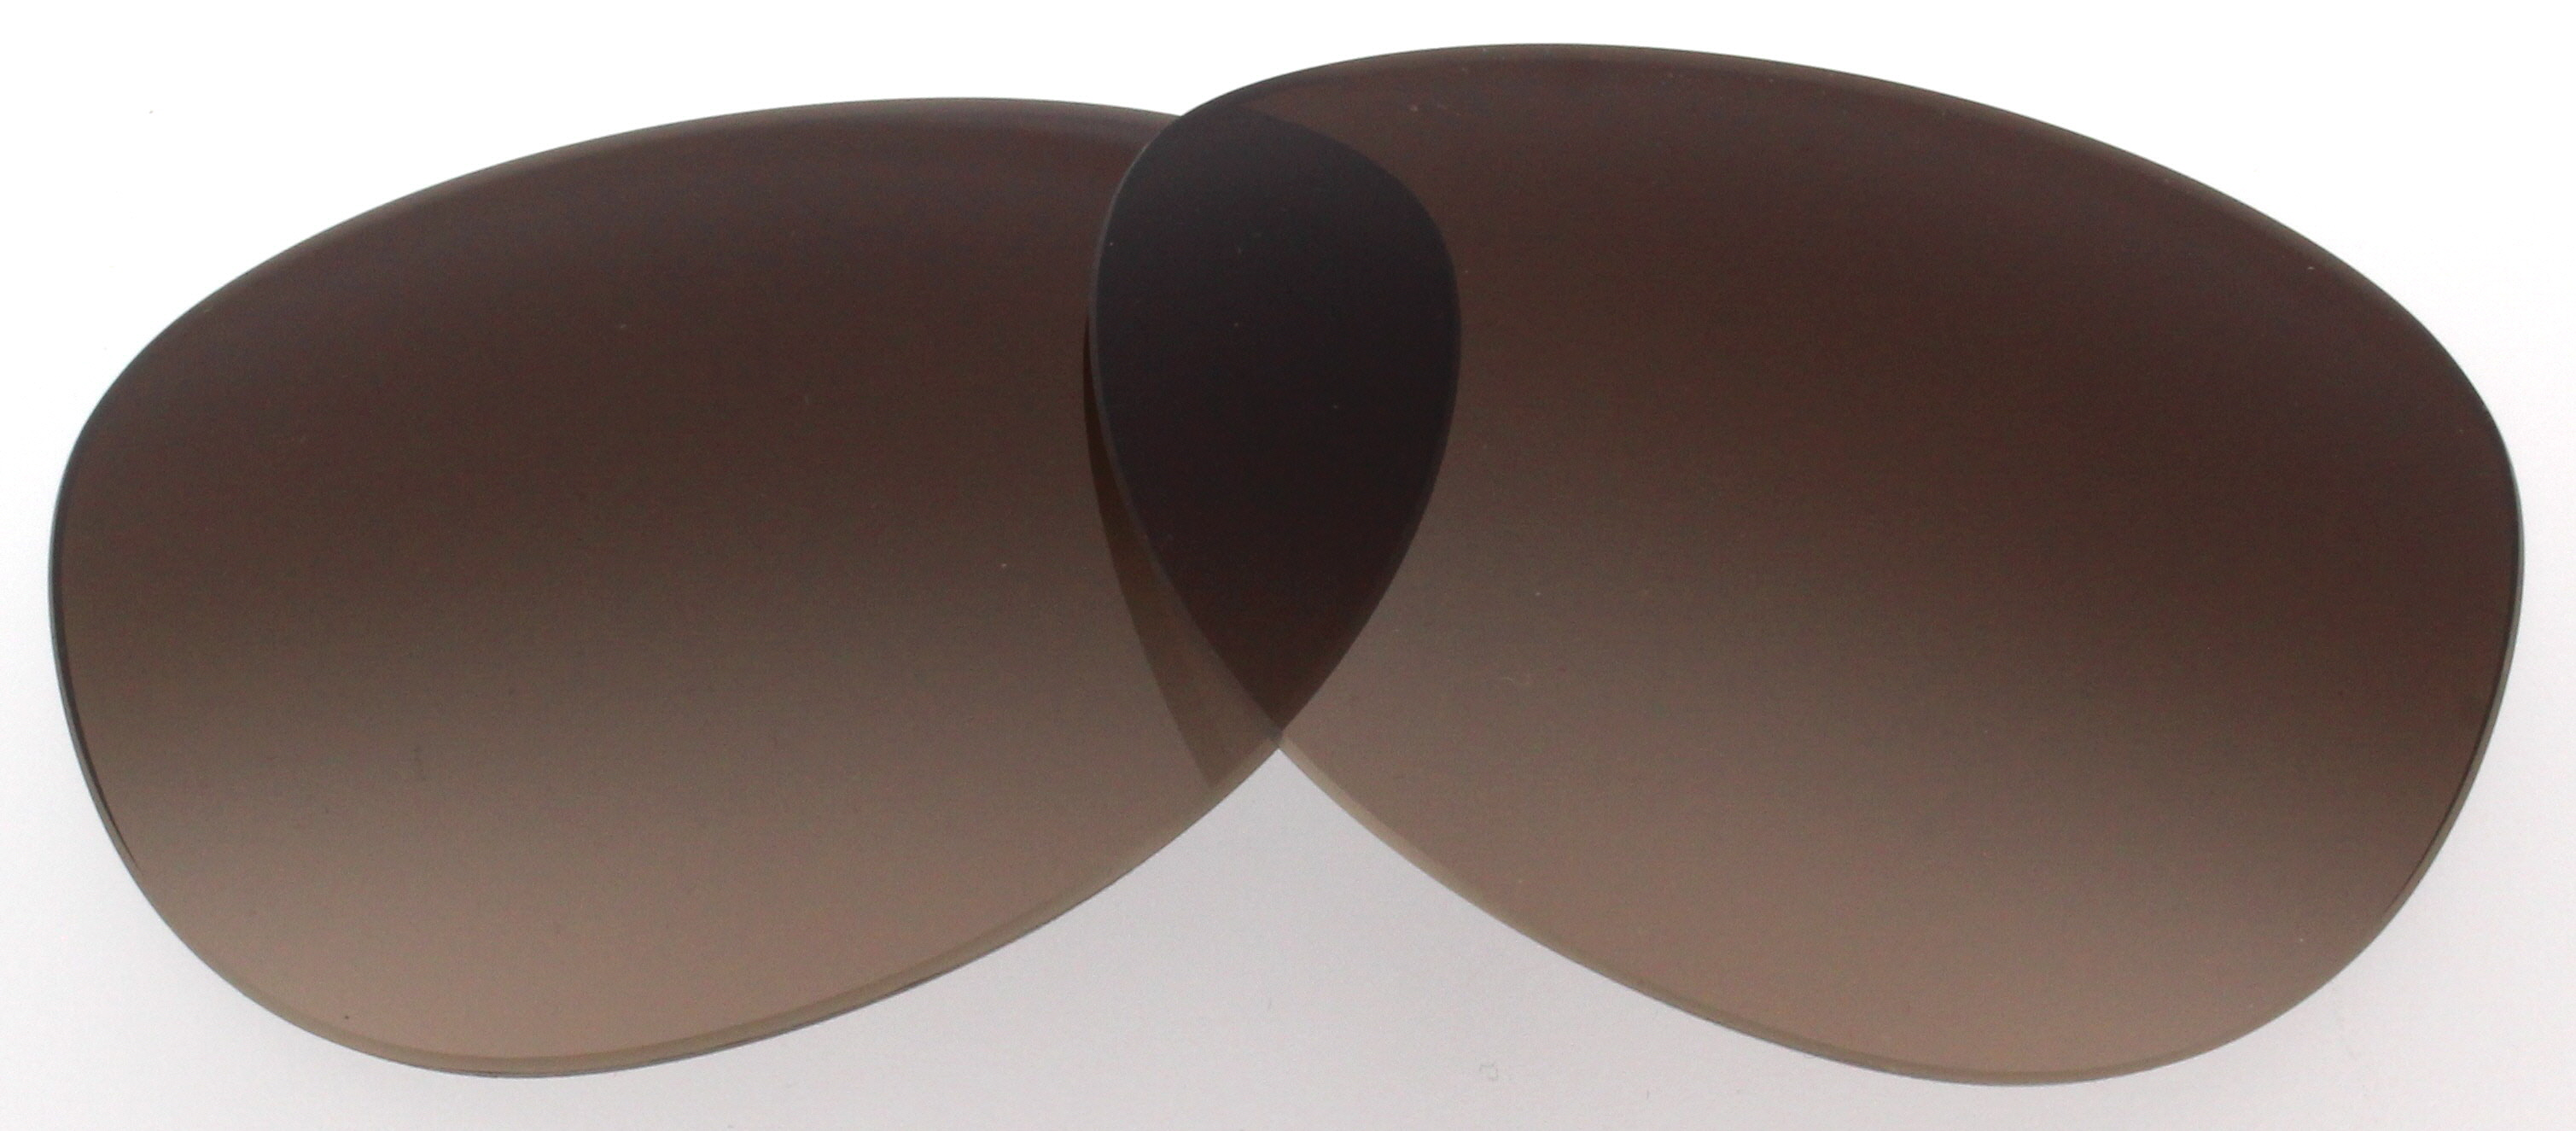 4bc8a506ee1 Image is loading COACH-Replacement-Lenses-HC7059-L138-Dark-Brown-Gradient-